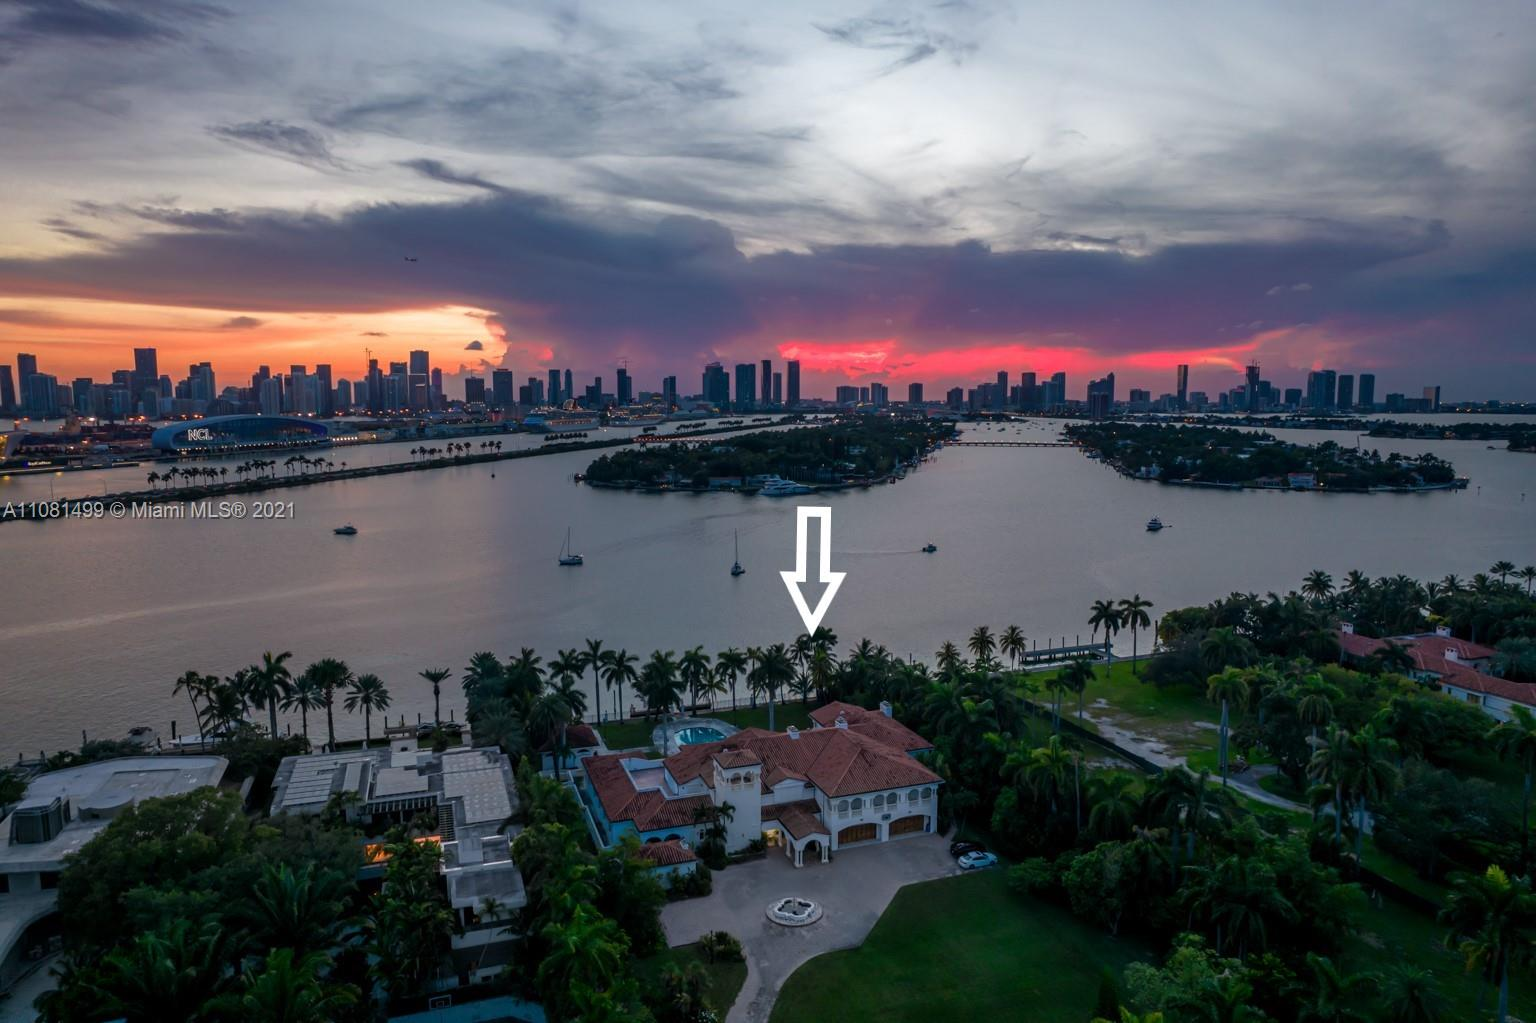 Featuring nearly 2 acres of land on Miami Beach's Star Island. Uninterrupted views of a gargantuan private dock, Port of Miami and the Magic City's skyline. Over 20,000 square feet of grandeur including an elevator plus a commercial generator. Star Island is the jewel of Miami Beach on Biscayne Bay, a conceptual idea, the mastermind of Miami developer Carl Fisher. A small, guarded island divided by a lovely park road that is lined with soaring palm trees and magnificent estates surrounds the island's perimeter. Each estate a story book entrance. Just a few minutes' drive from Miami's Financial District and Downtown, South Beach, and Miami International Airport. You can also enjoy a water commute from your yacht launched from a private dock overlooking Miami's marvelous skyline.